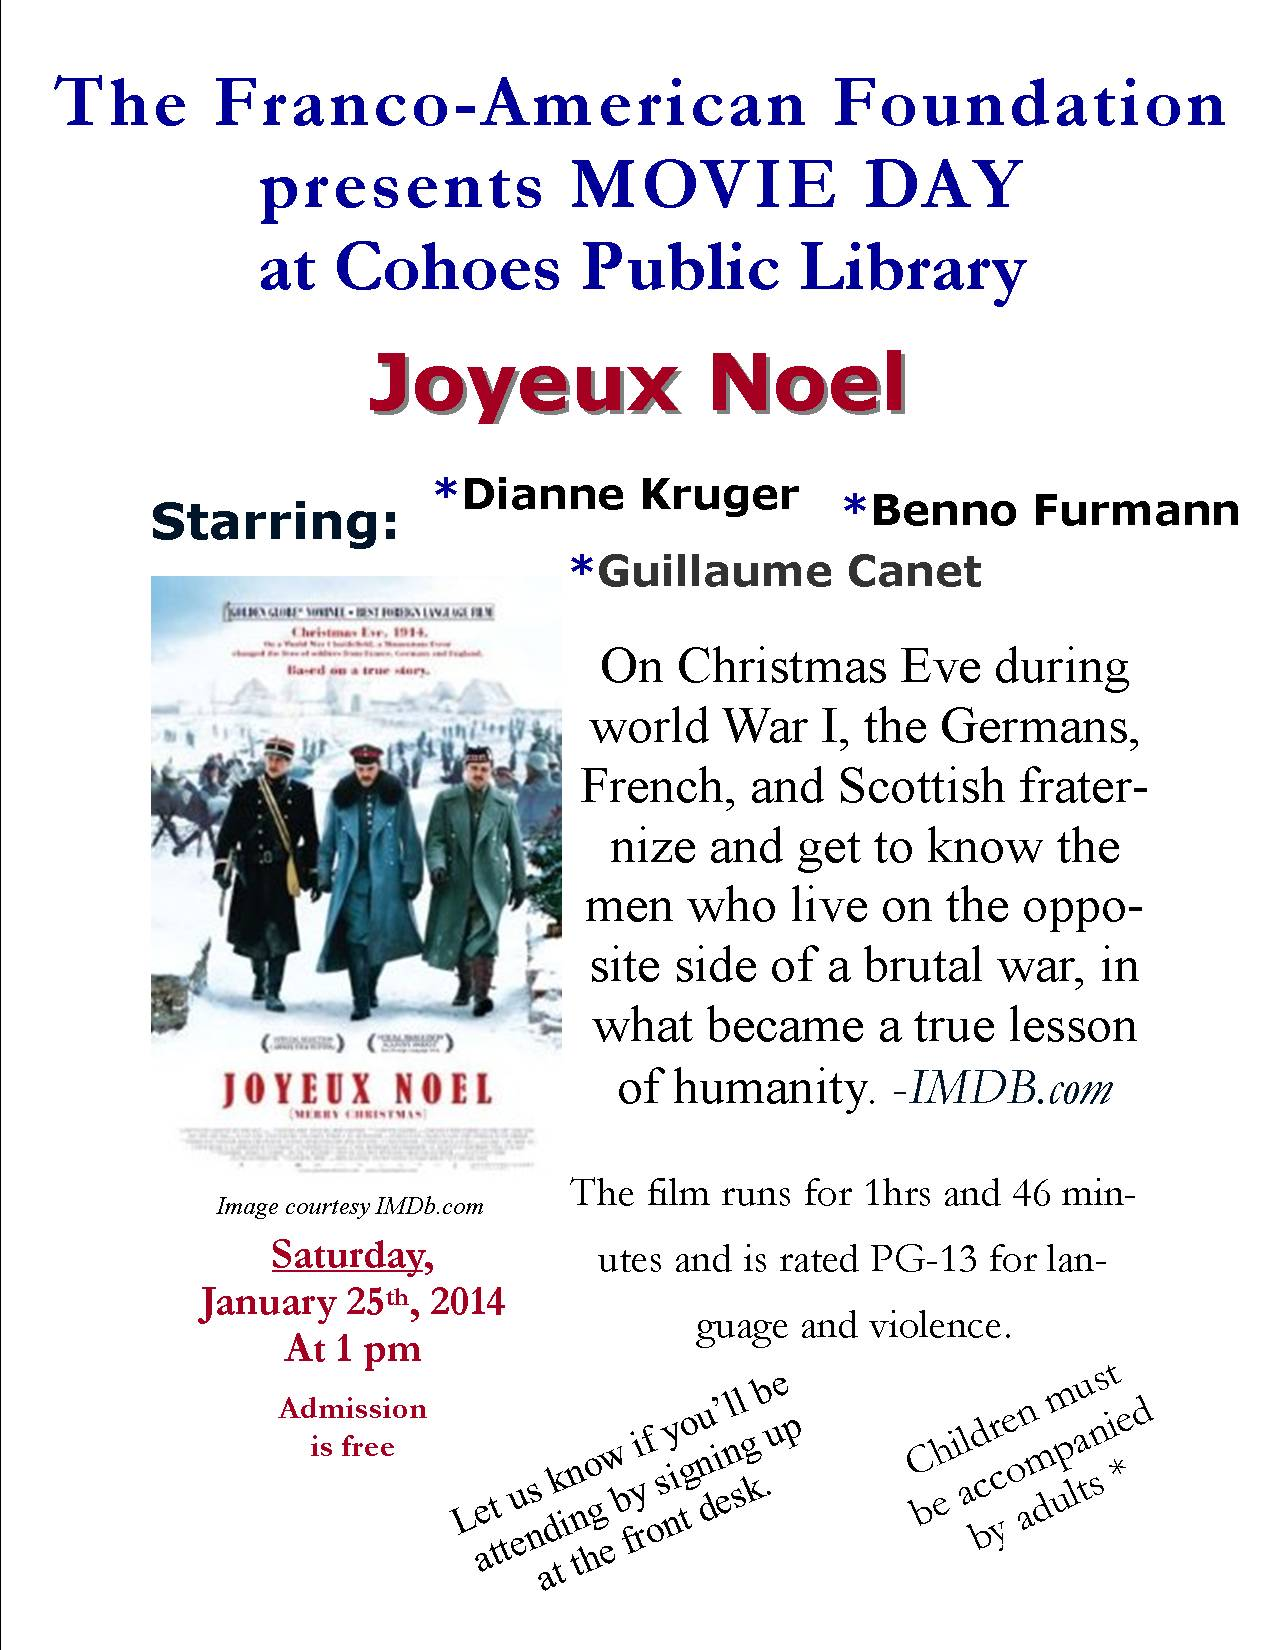 The Franco-American Federation presents the movie Joyeux Noel ...